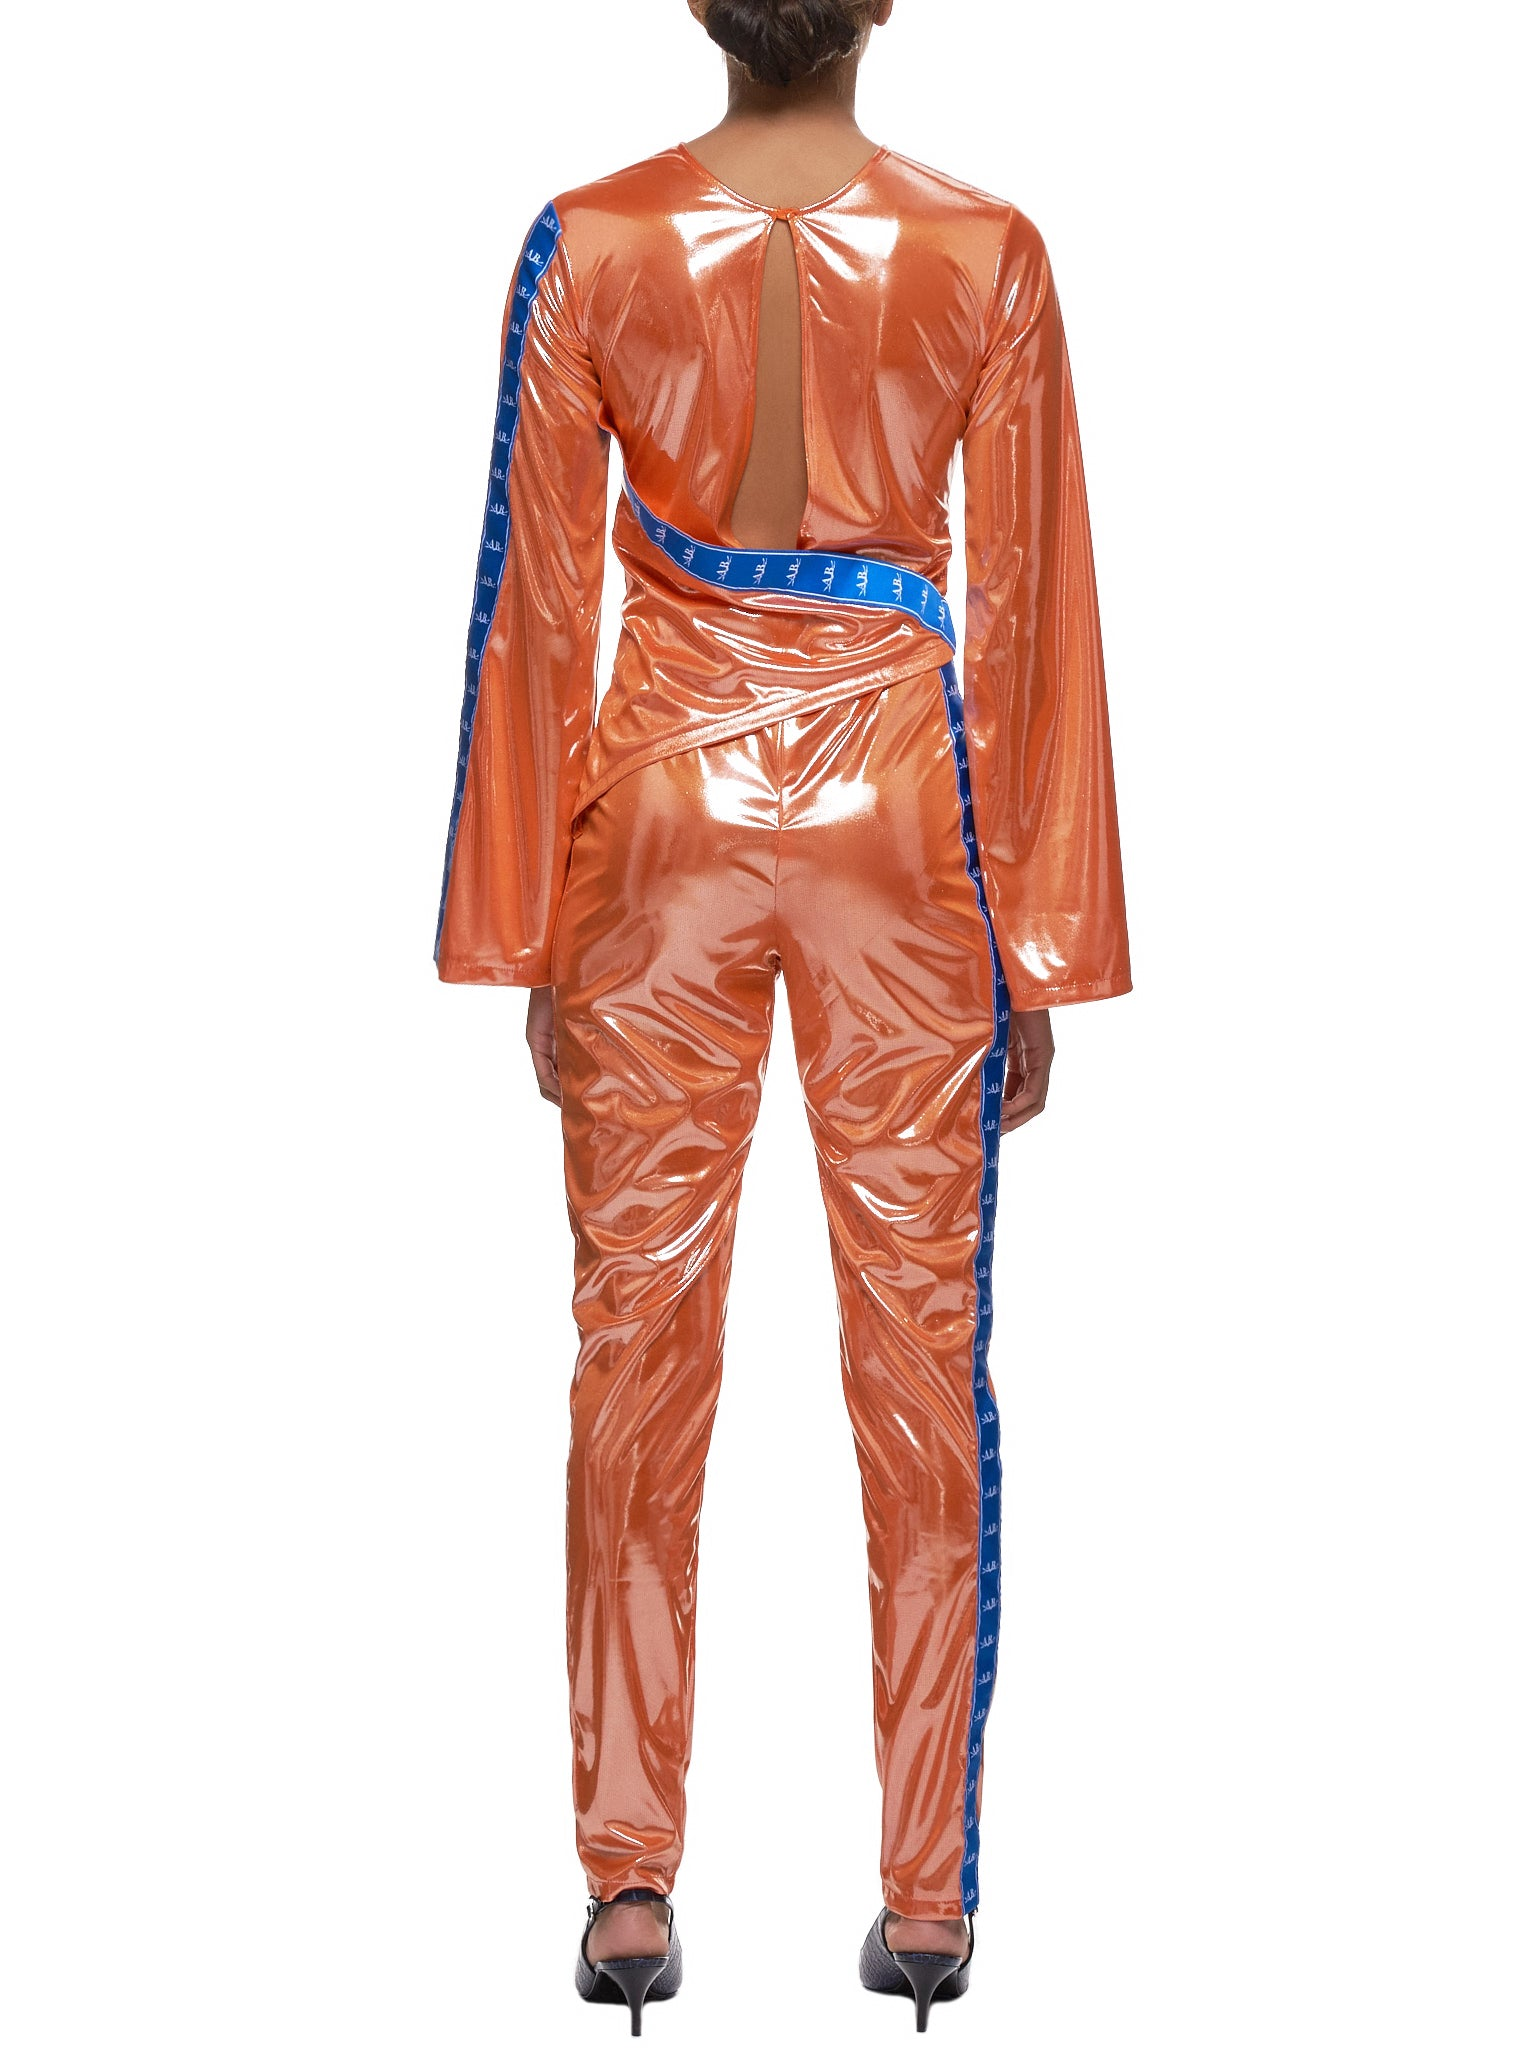 Glossy Bodysuit (36-W-ORANGE-BLUESTRIPES)